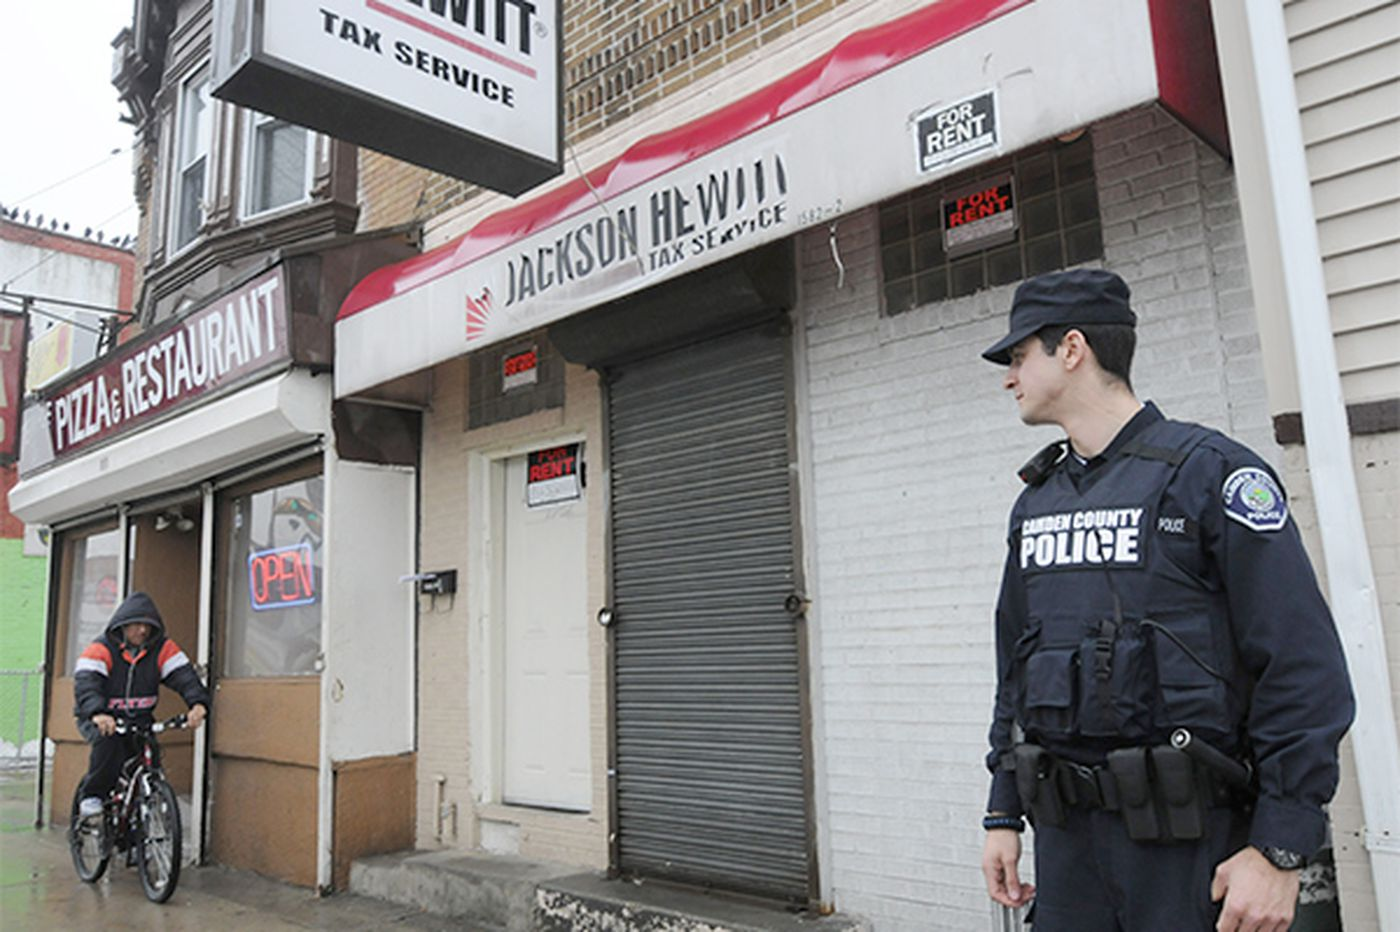 New police try to change minds, win hearts in Camden streets